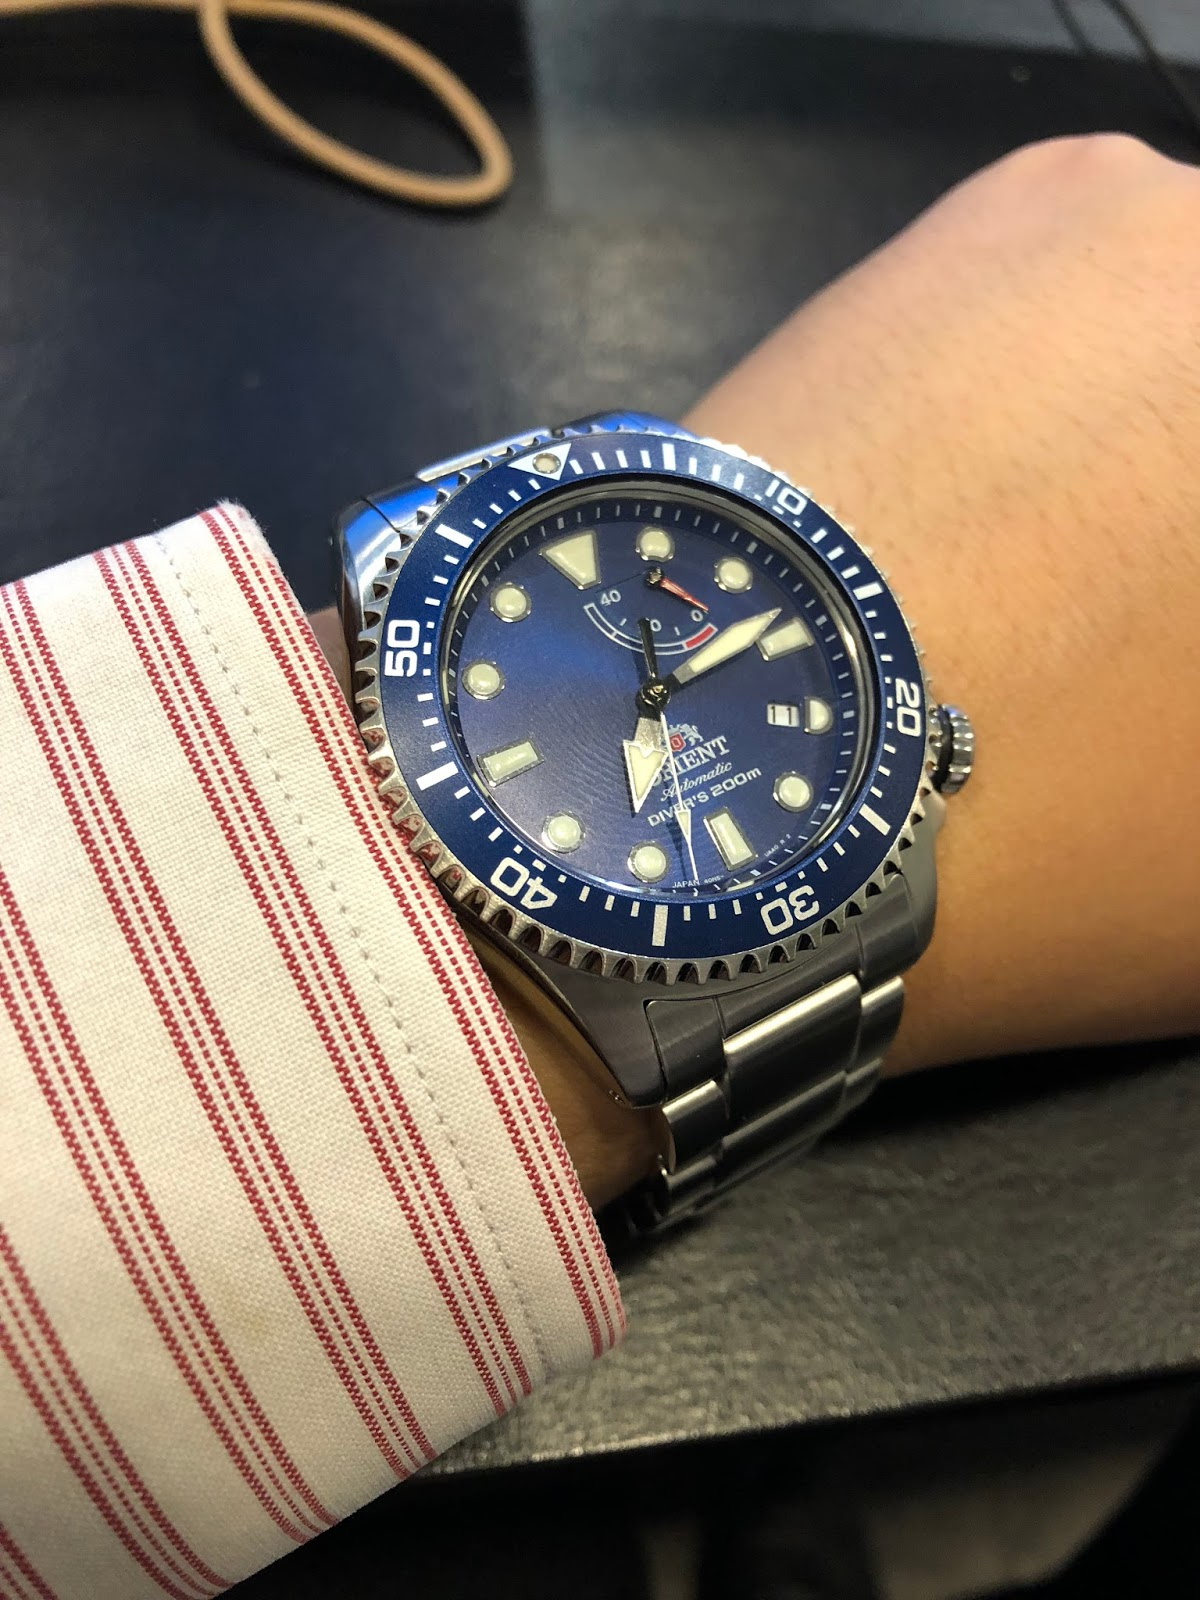 d2bc78880f339 ... out that Orient has decided to end its M-Force series. This series was  Orient s specialized heavy duty sport and diver watch line. The watches  under ...